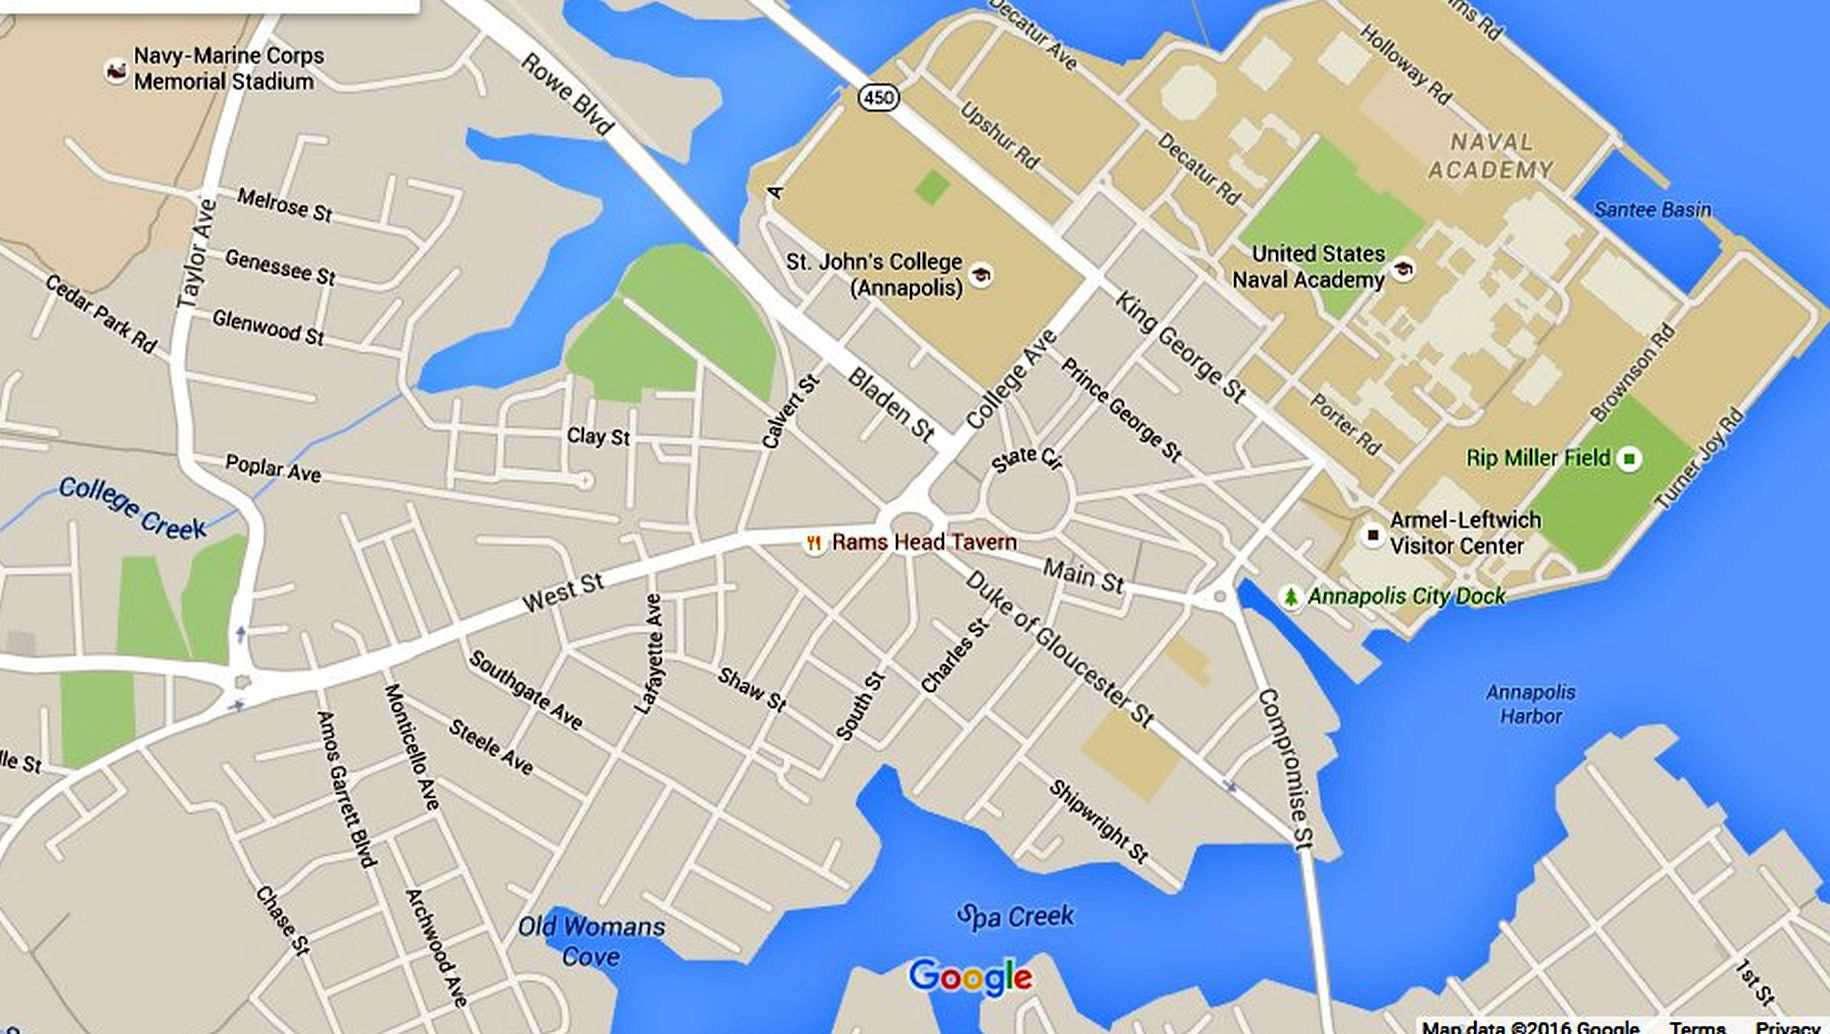 Map Of Annapolis Md Annapolis Maps: Downtown and the Surrounding Area